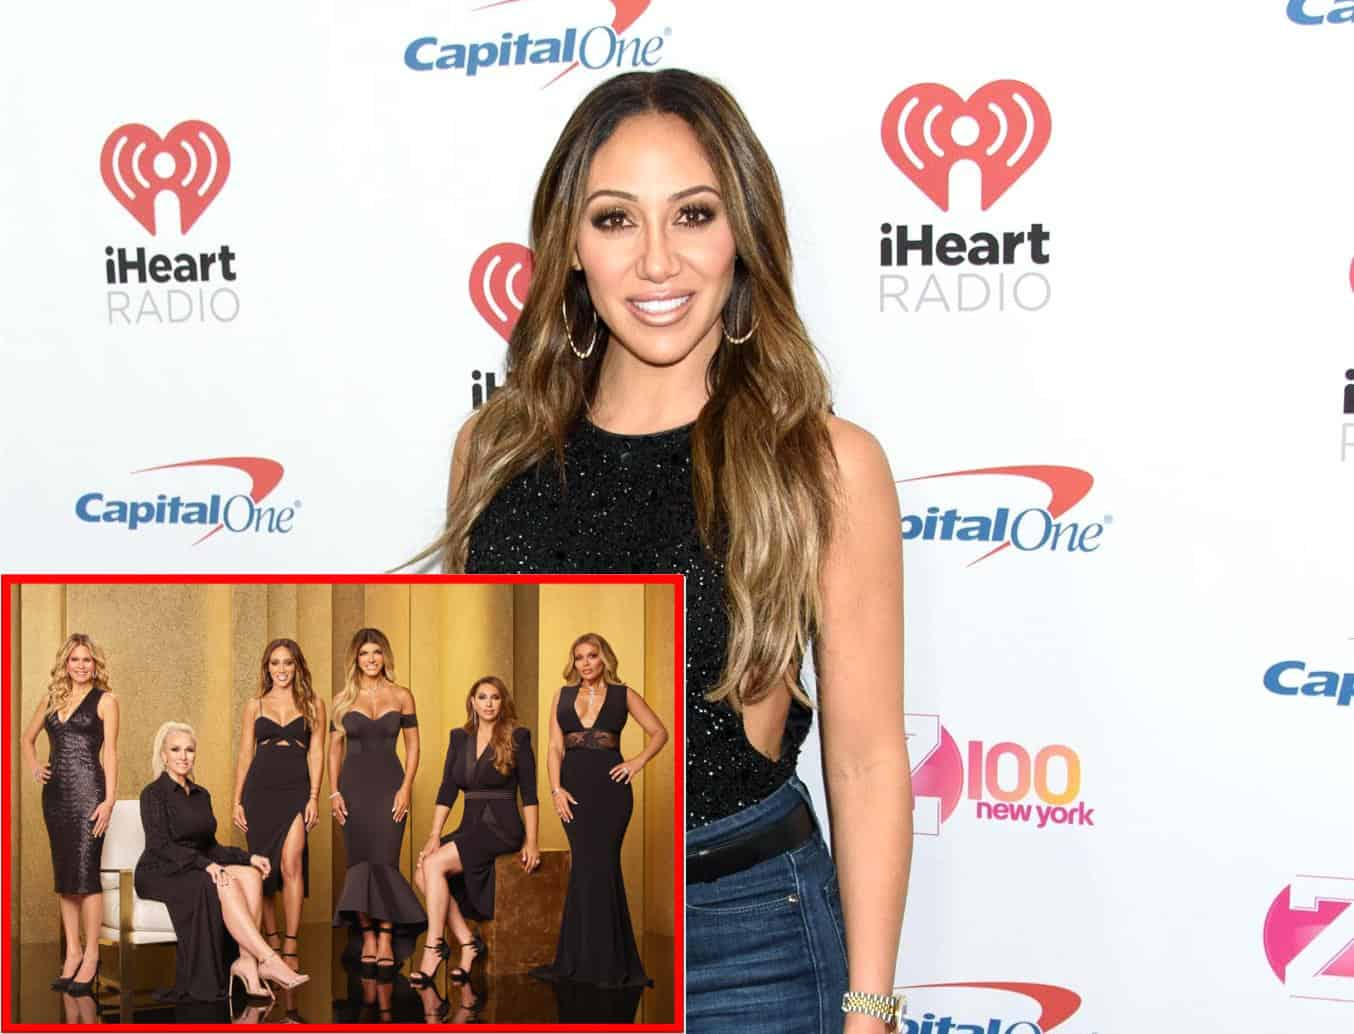 \Melissa Gorga Reveals Who Went at it the Most at the RHONJ Season 10 Reunion, Plus Find Out Which Housewife Was Most Explosive and If Danielle and Teresa Squashed their Beef